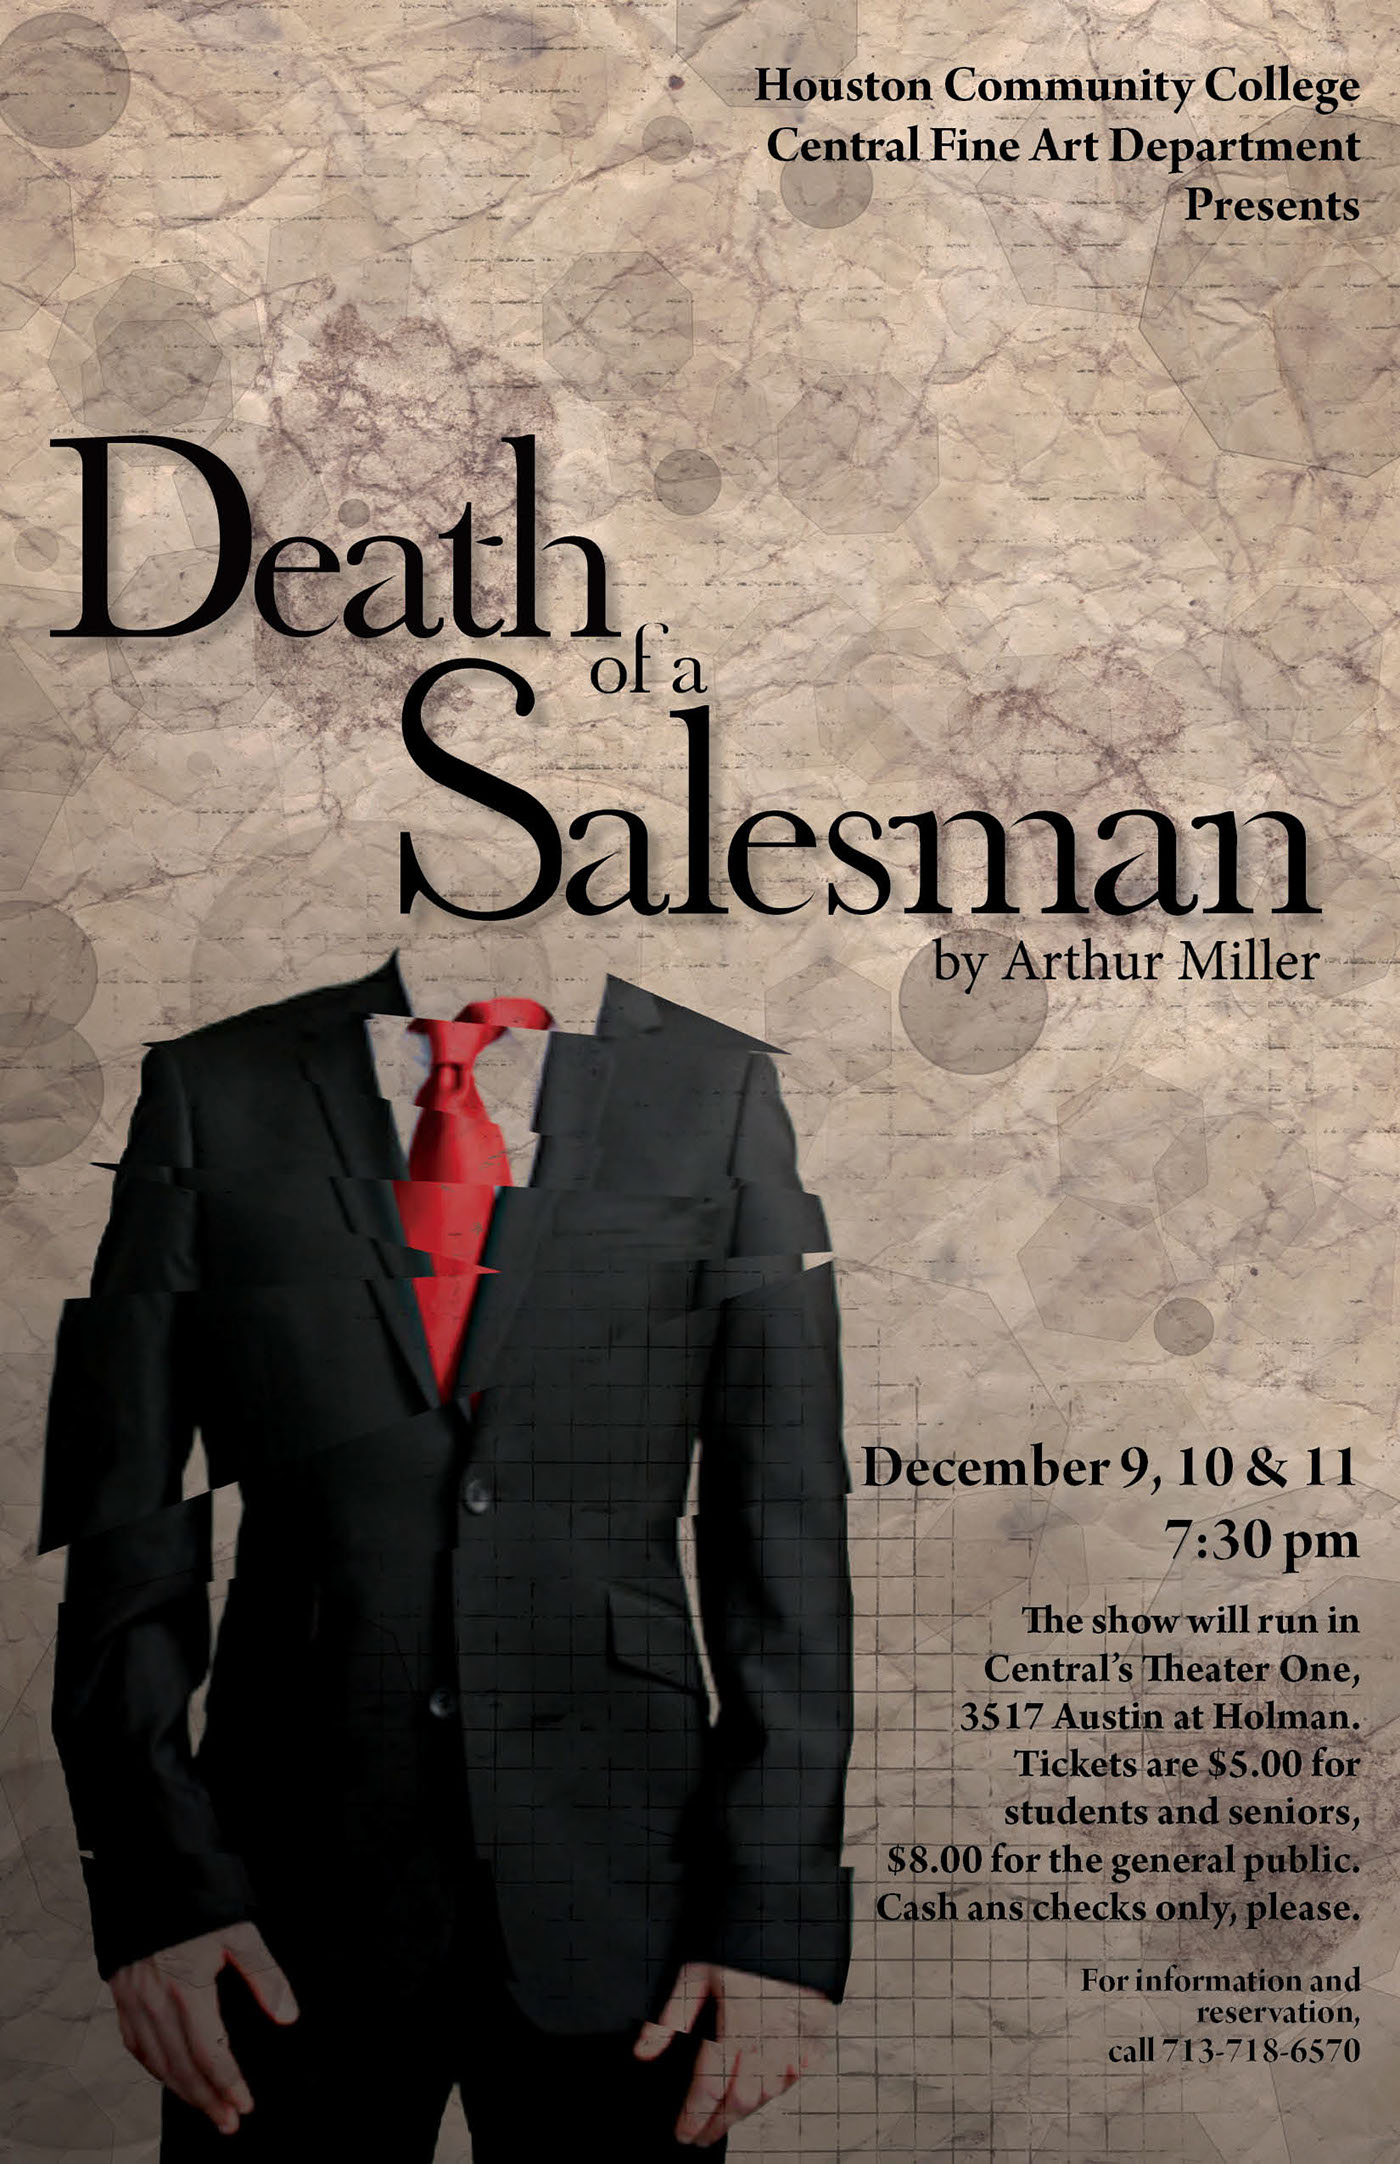 an independent assignment on death of a salesman Death of a salesman essays are academic essays for citation these papers were written primarily by students and provide critical analysis of the play death of a salesman by arthur miller.